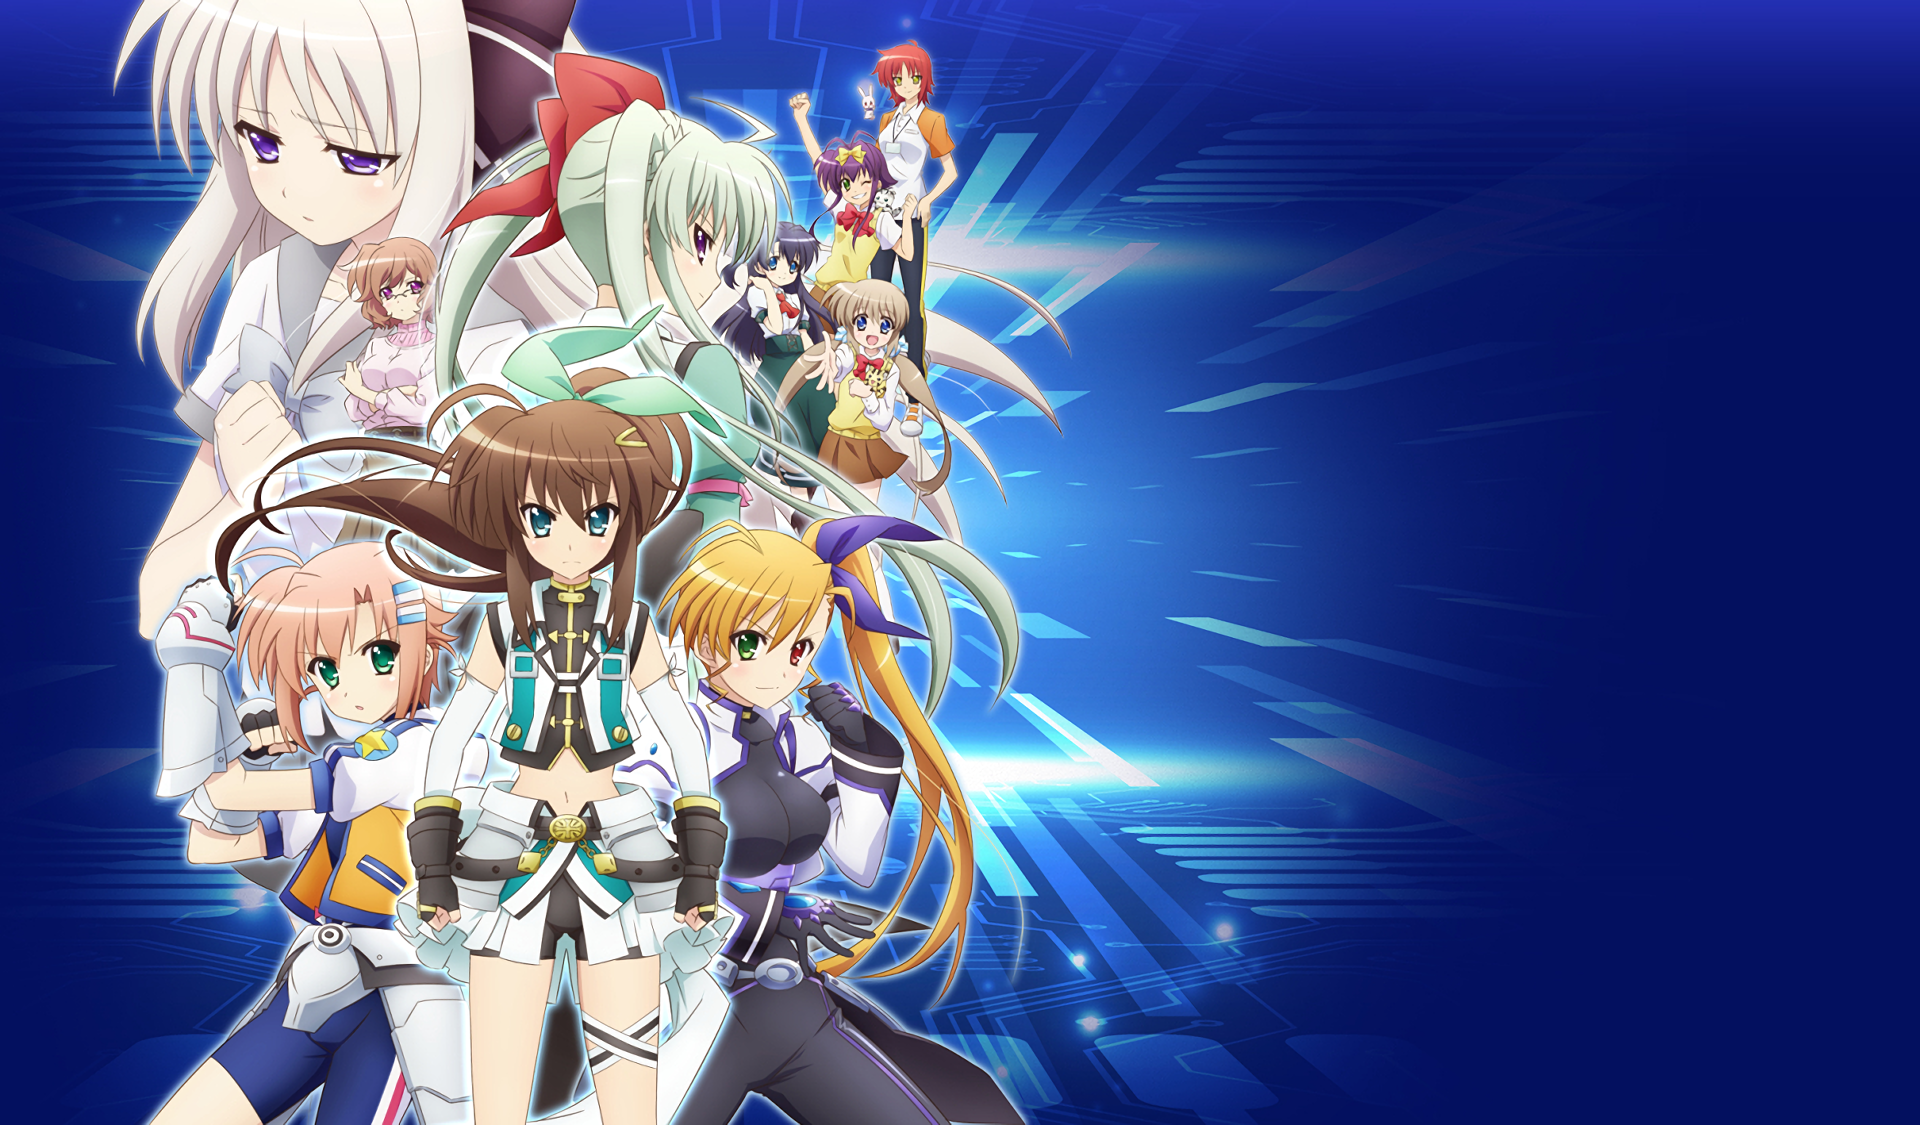 ViVid Strike Full HD Wallpaper and Background